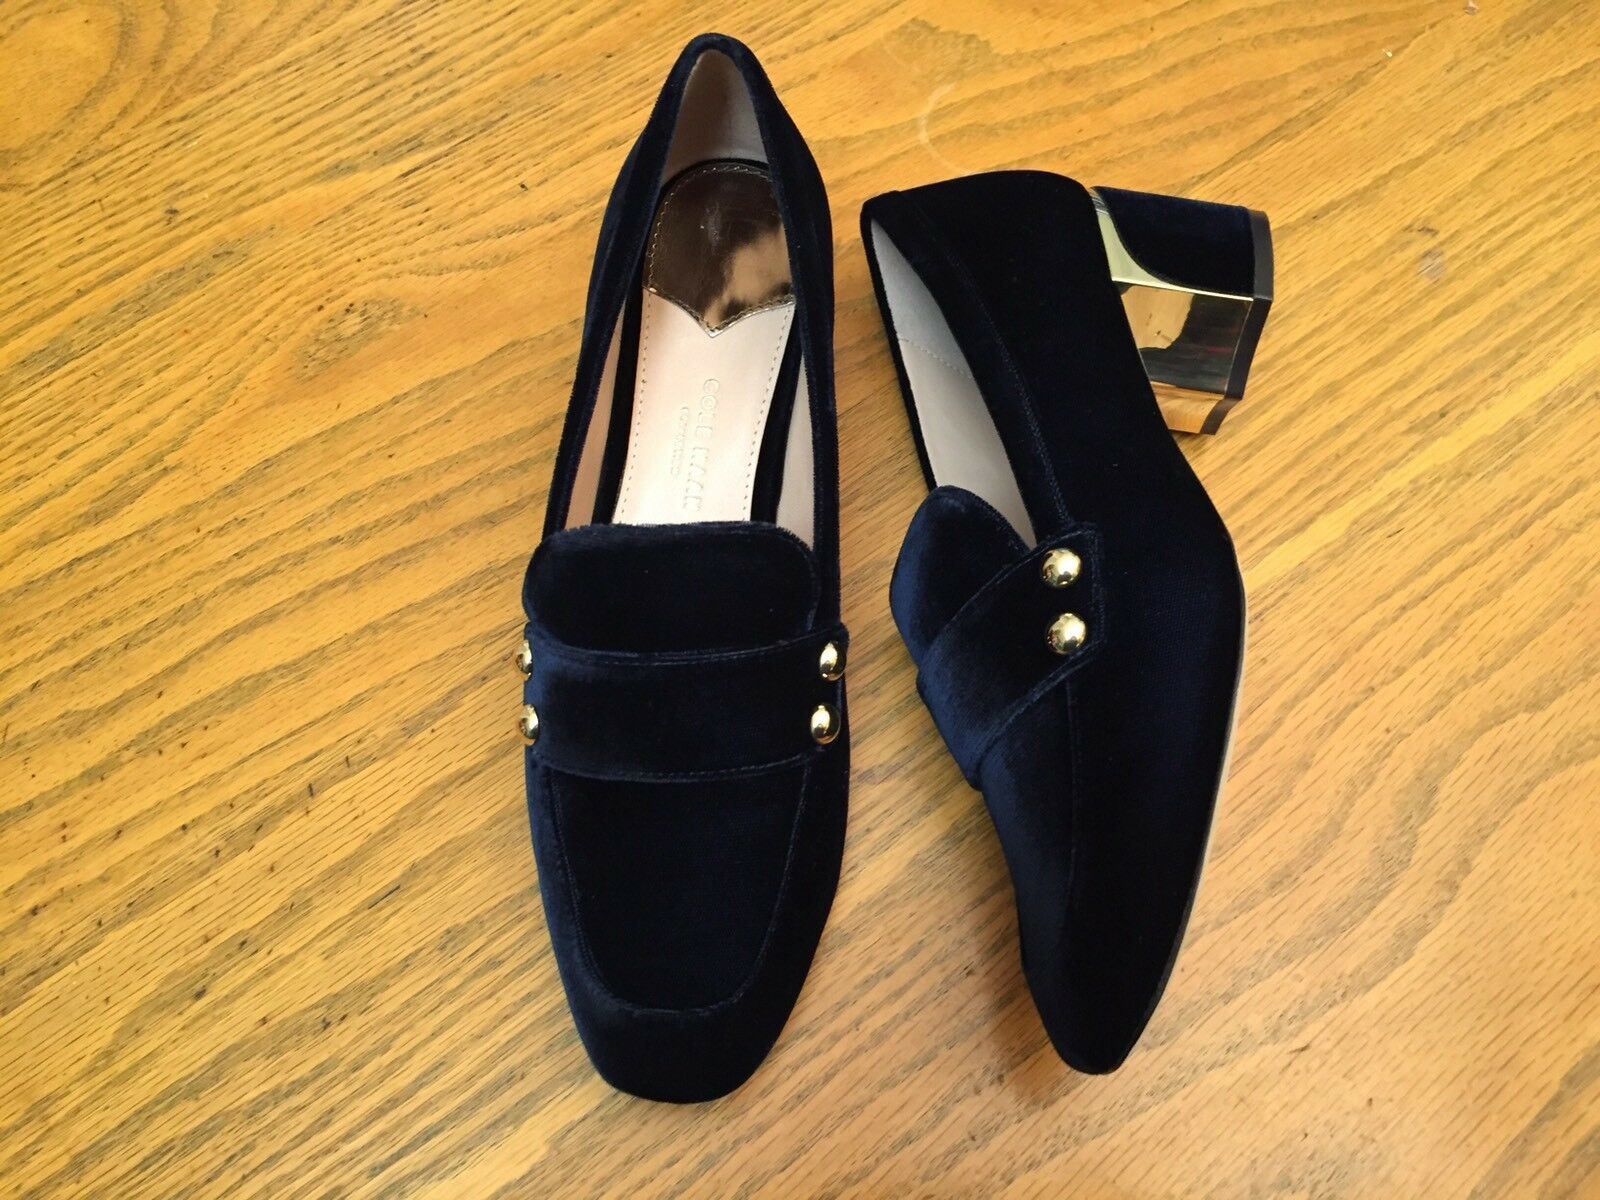 COLE HAAN COLLECTION MARINE WOMENS VELVET LOAFER SHOES NEW SIZE 6.5